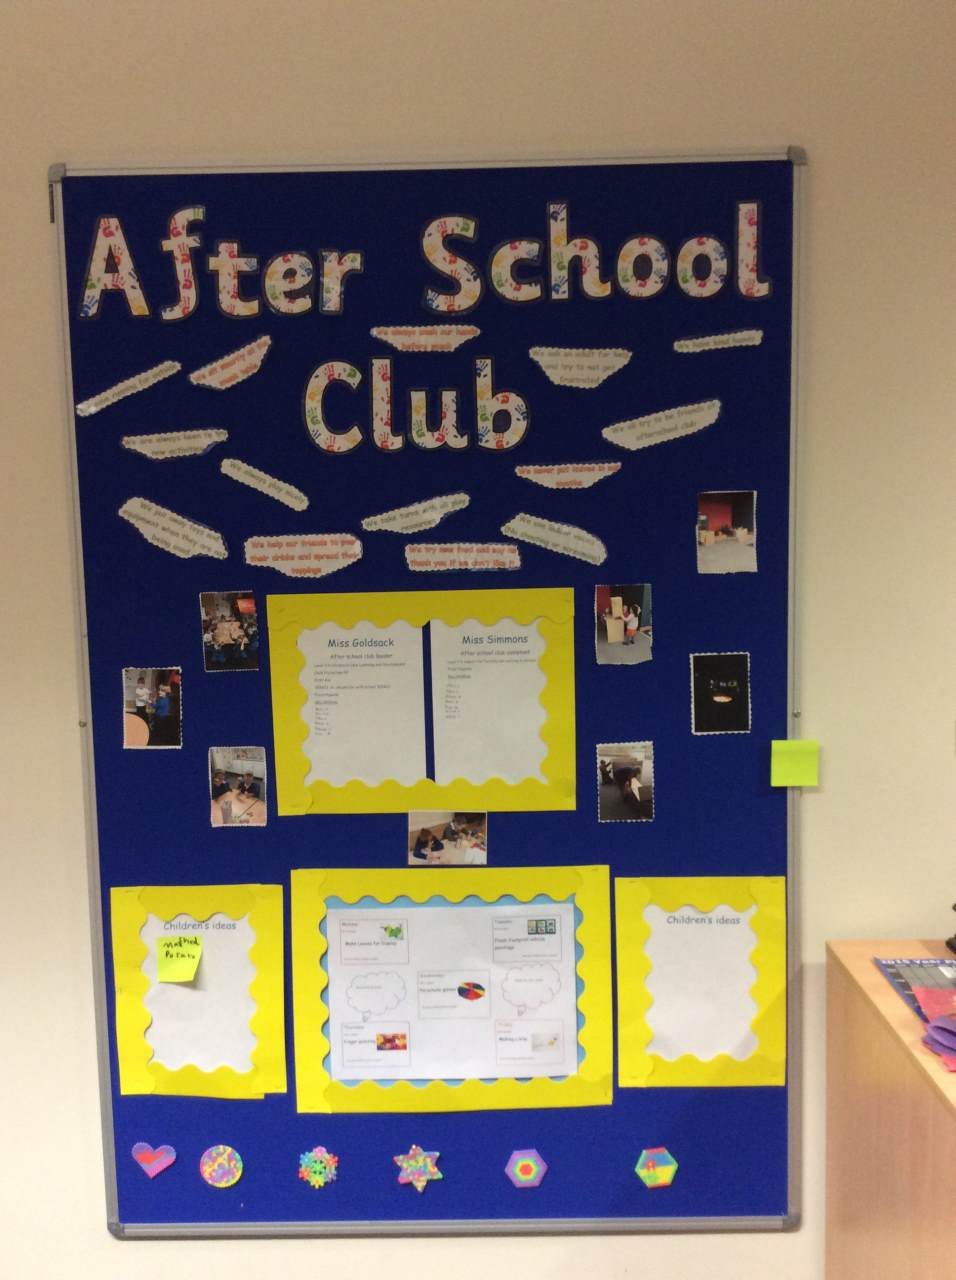 After-School Club